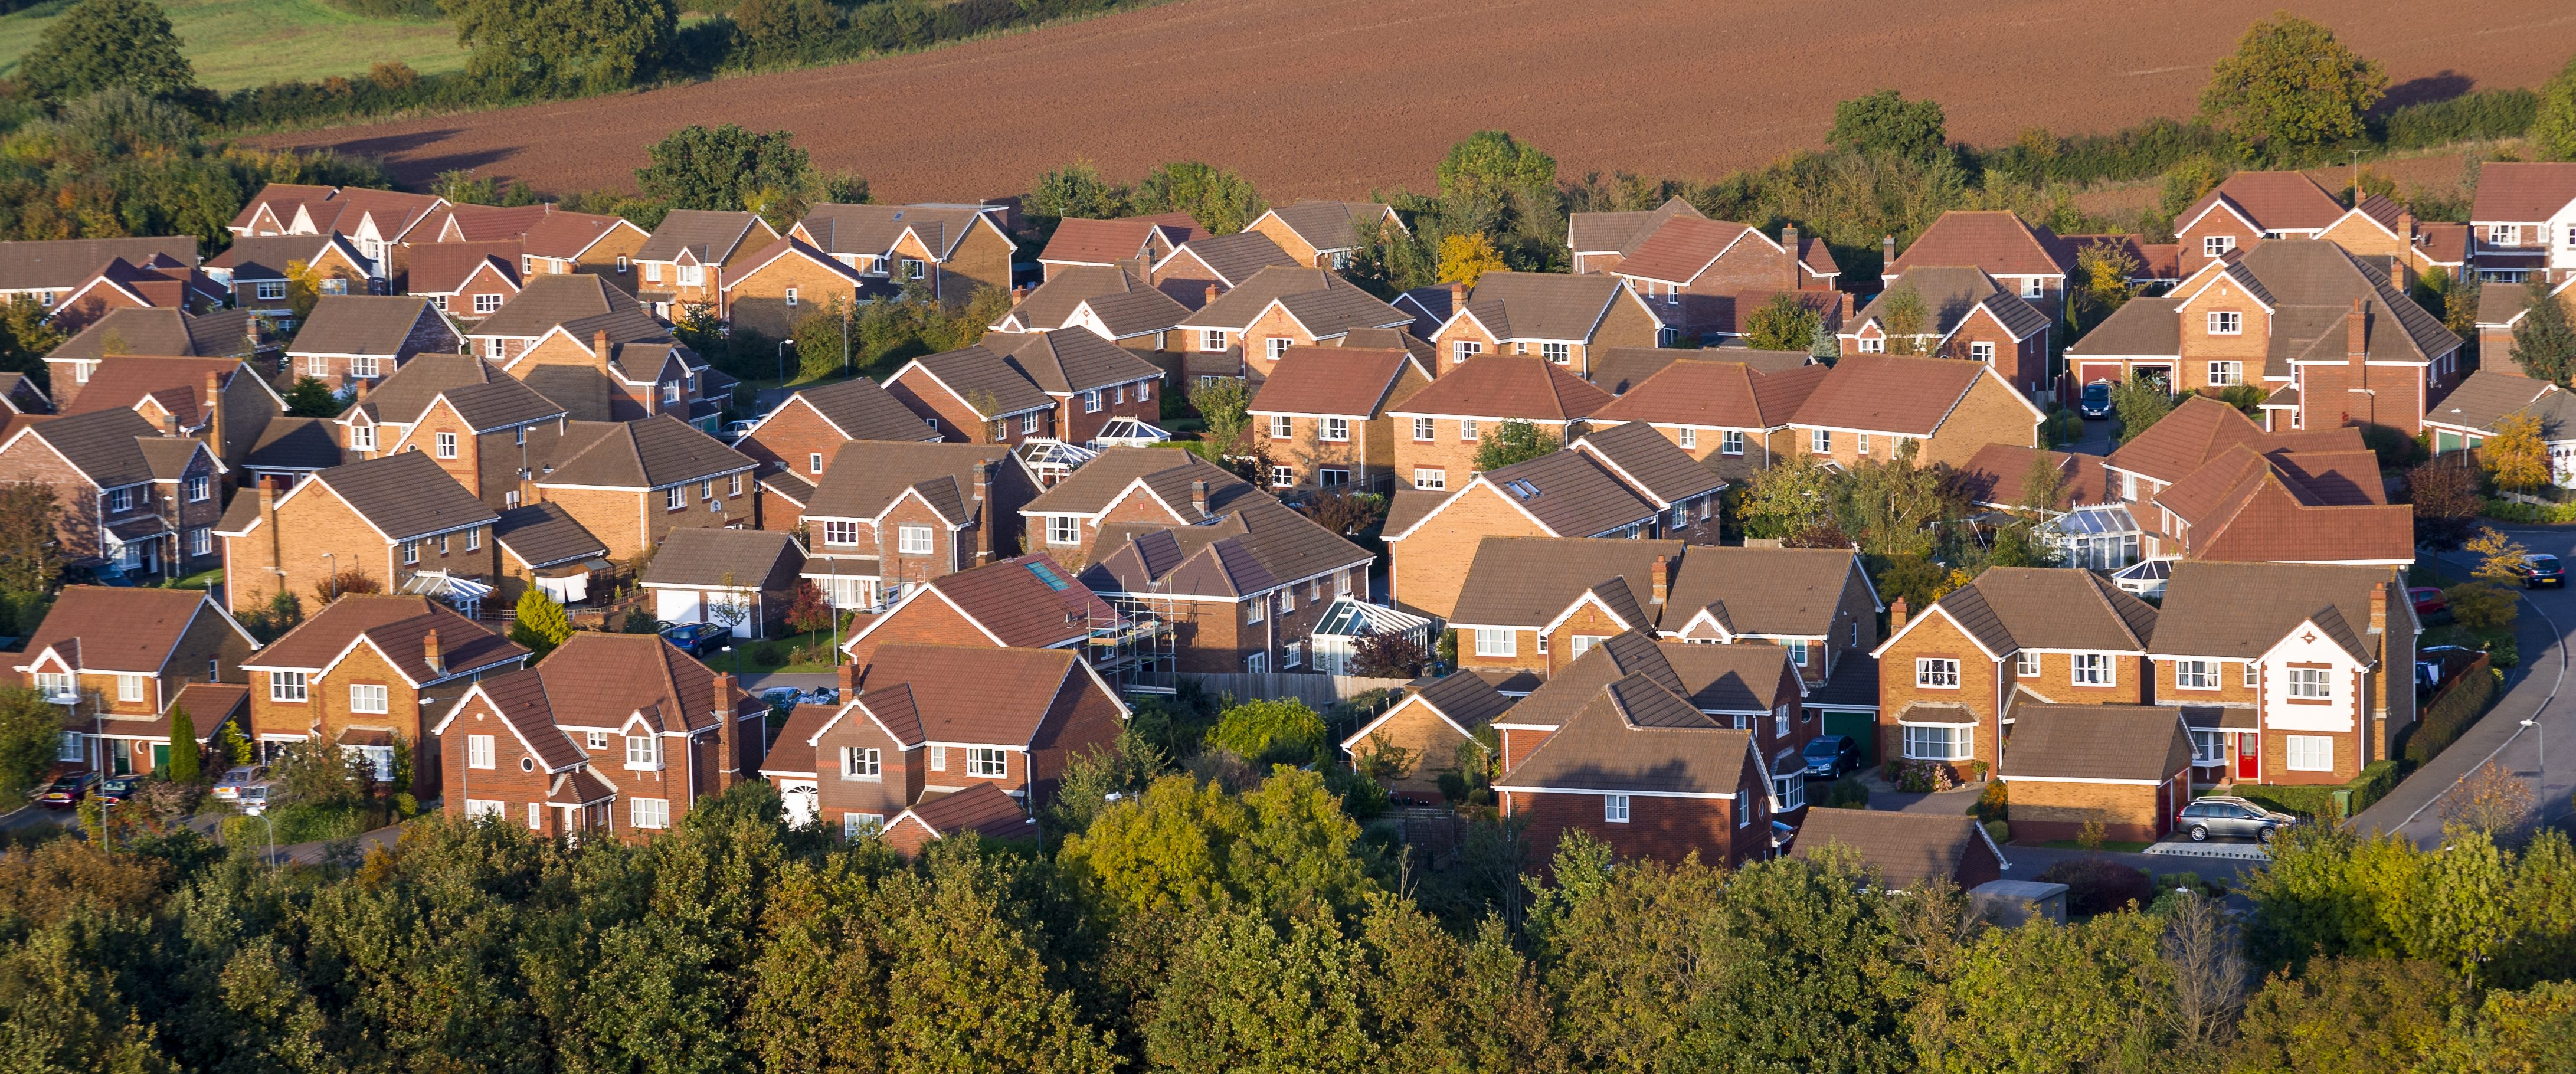 Modern, red brick houses viewed from above.